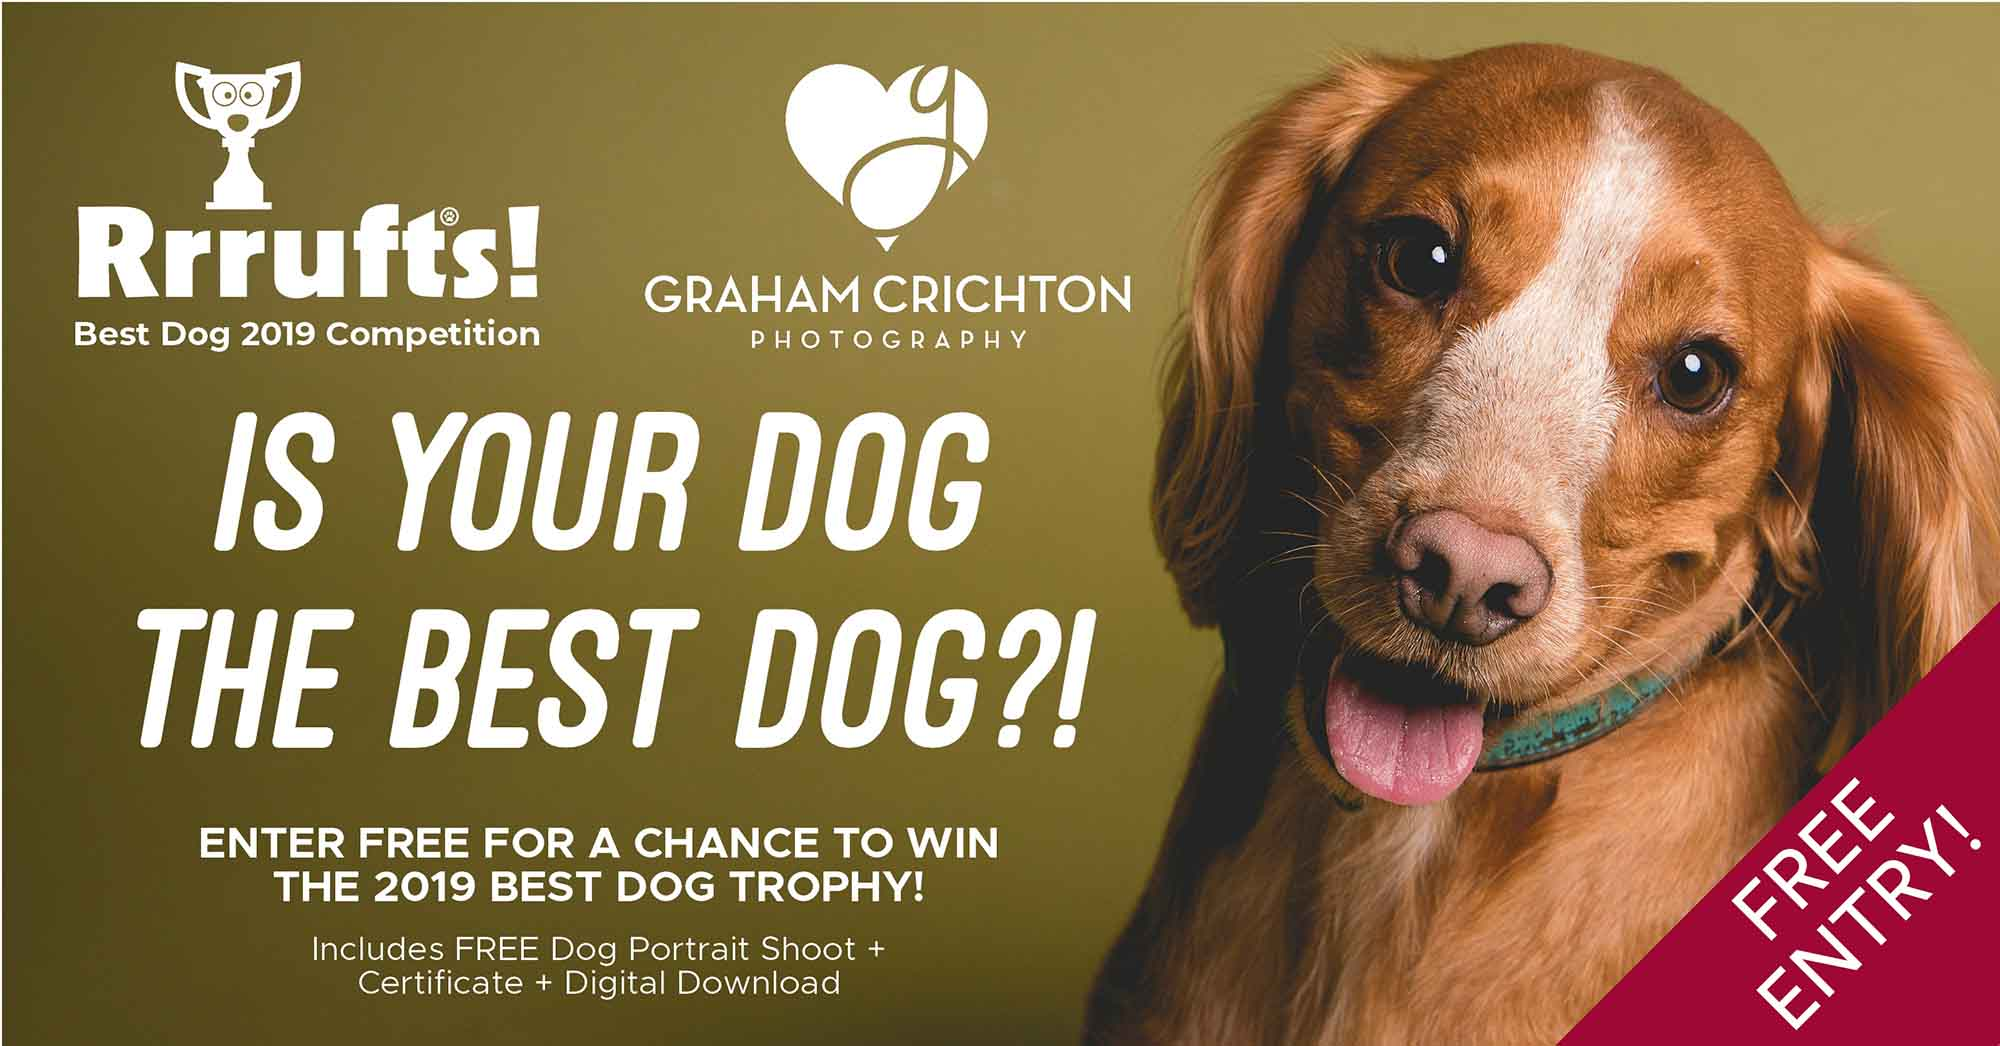 Best Dog 2019 Competition - Enter FREE Here